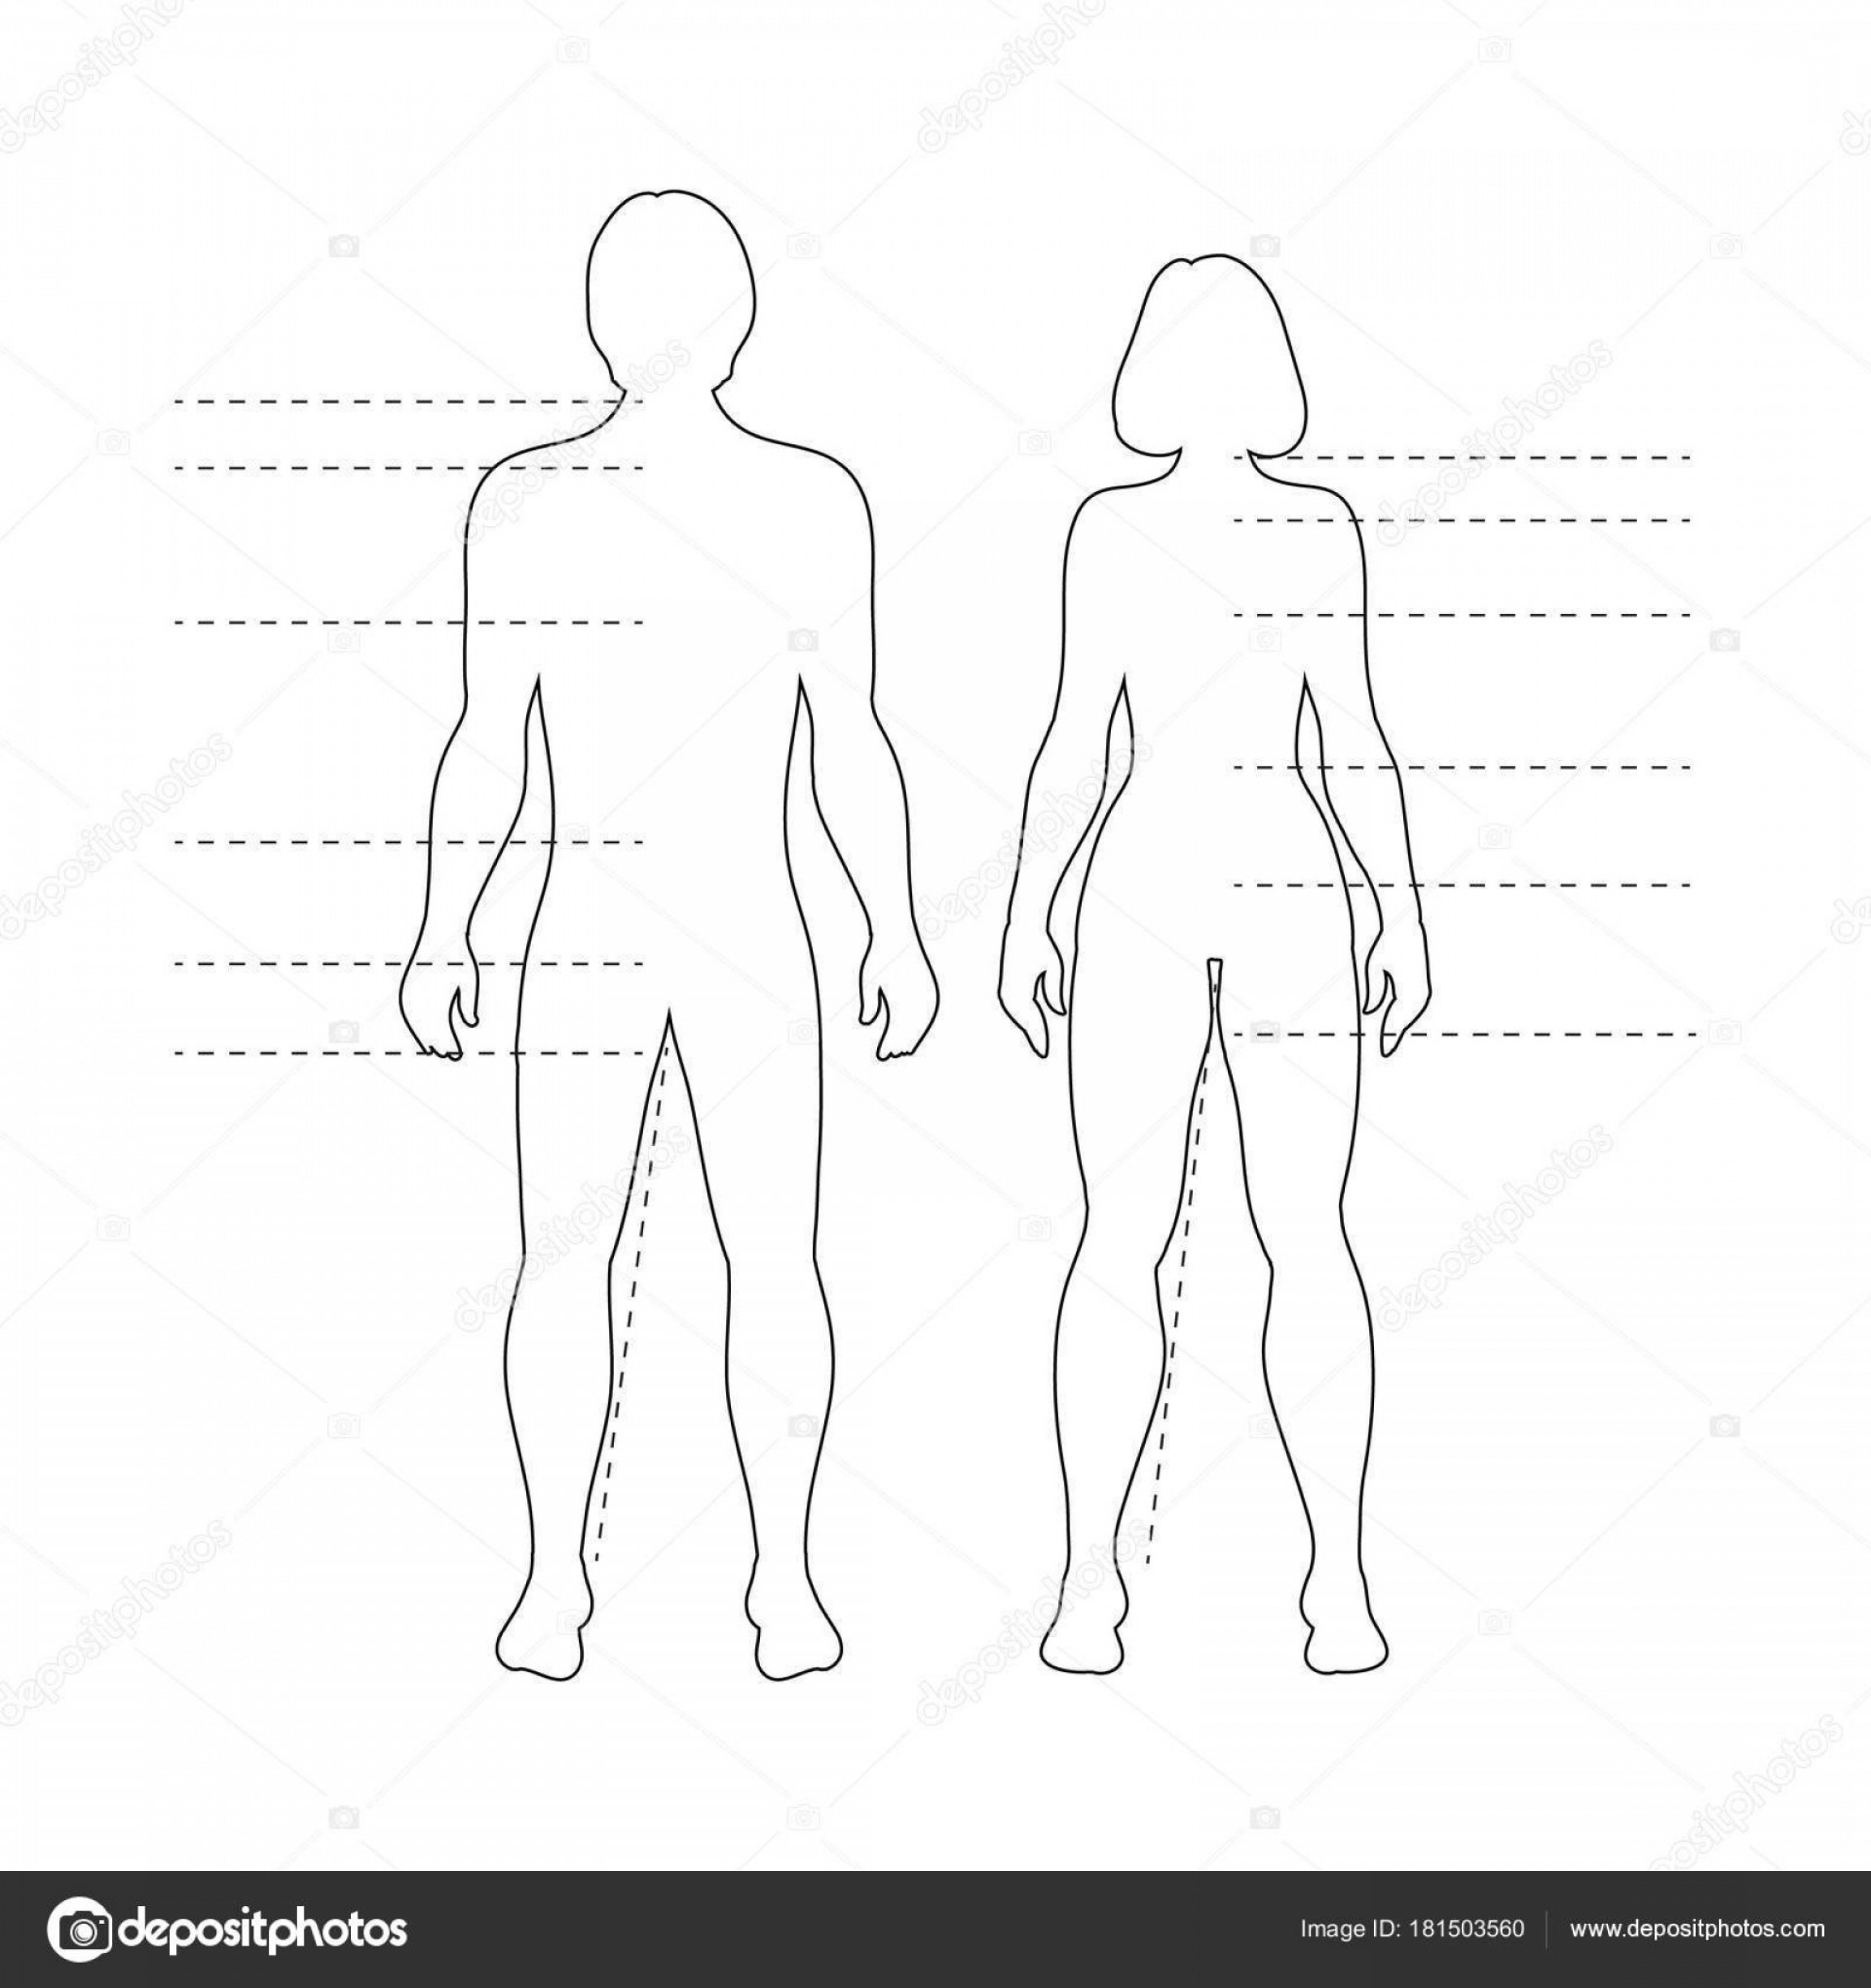 Human Body Outline Vector: Stock Illustration Man Woman Human Body Silhouettes